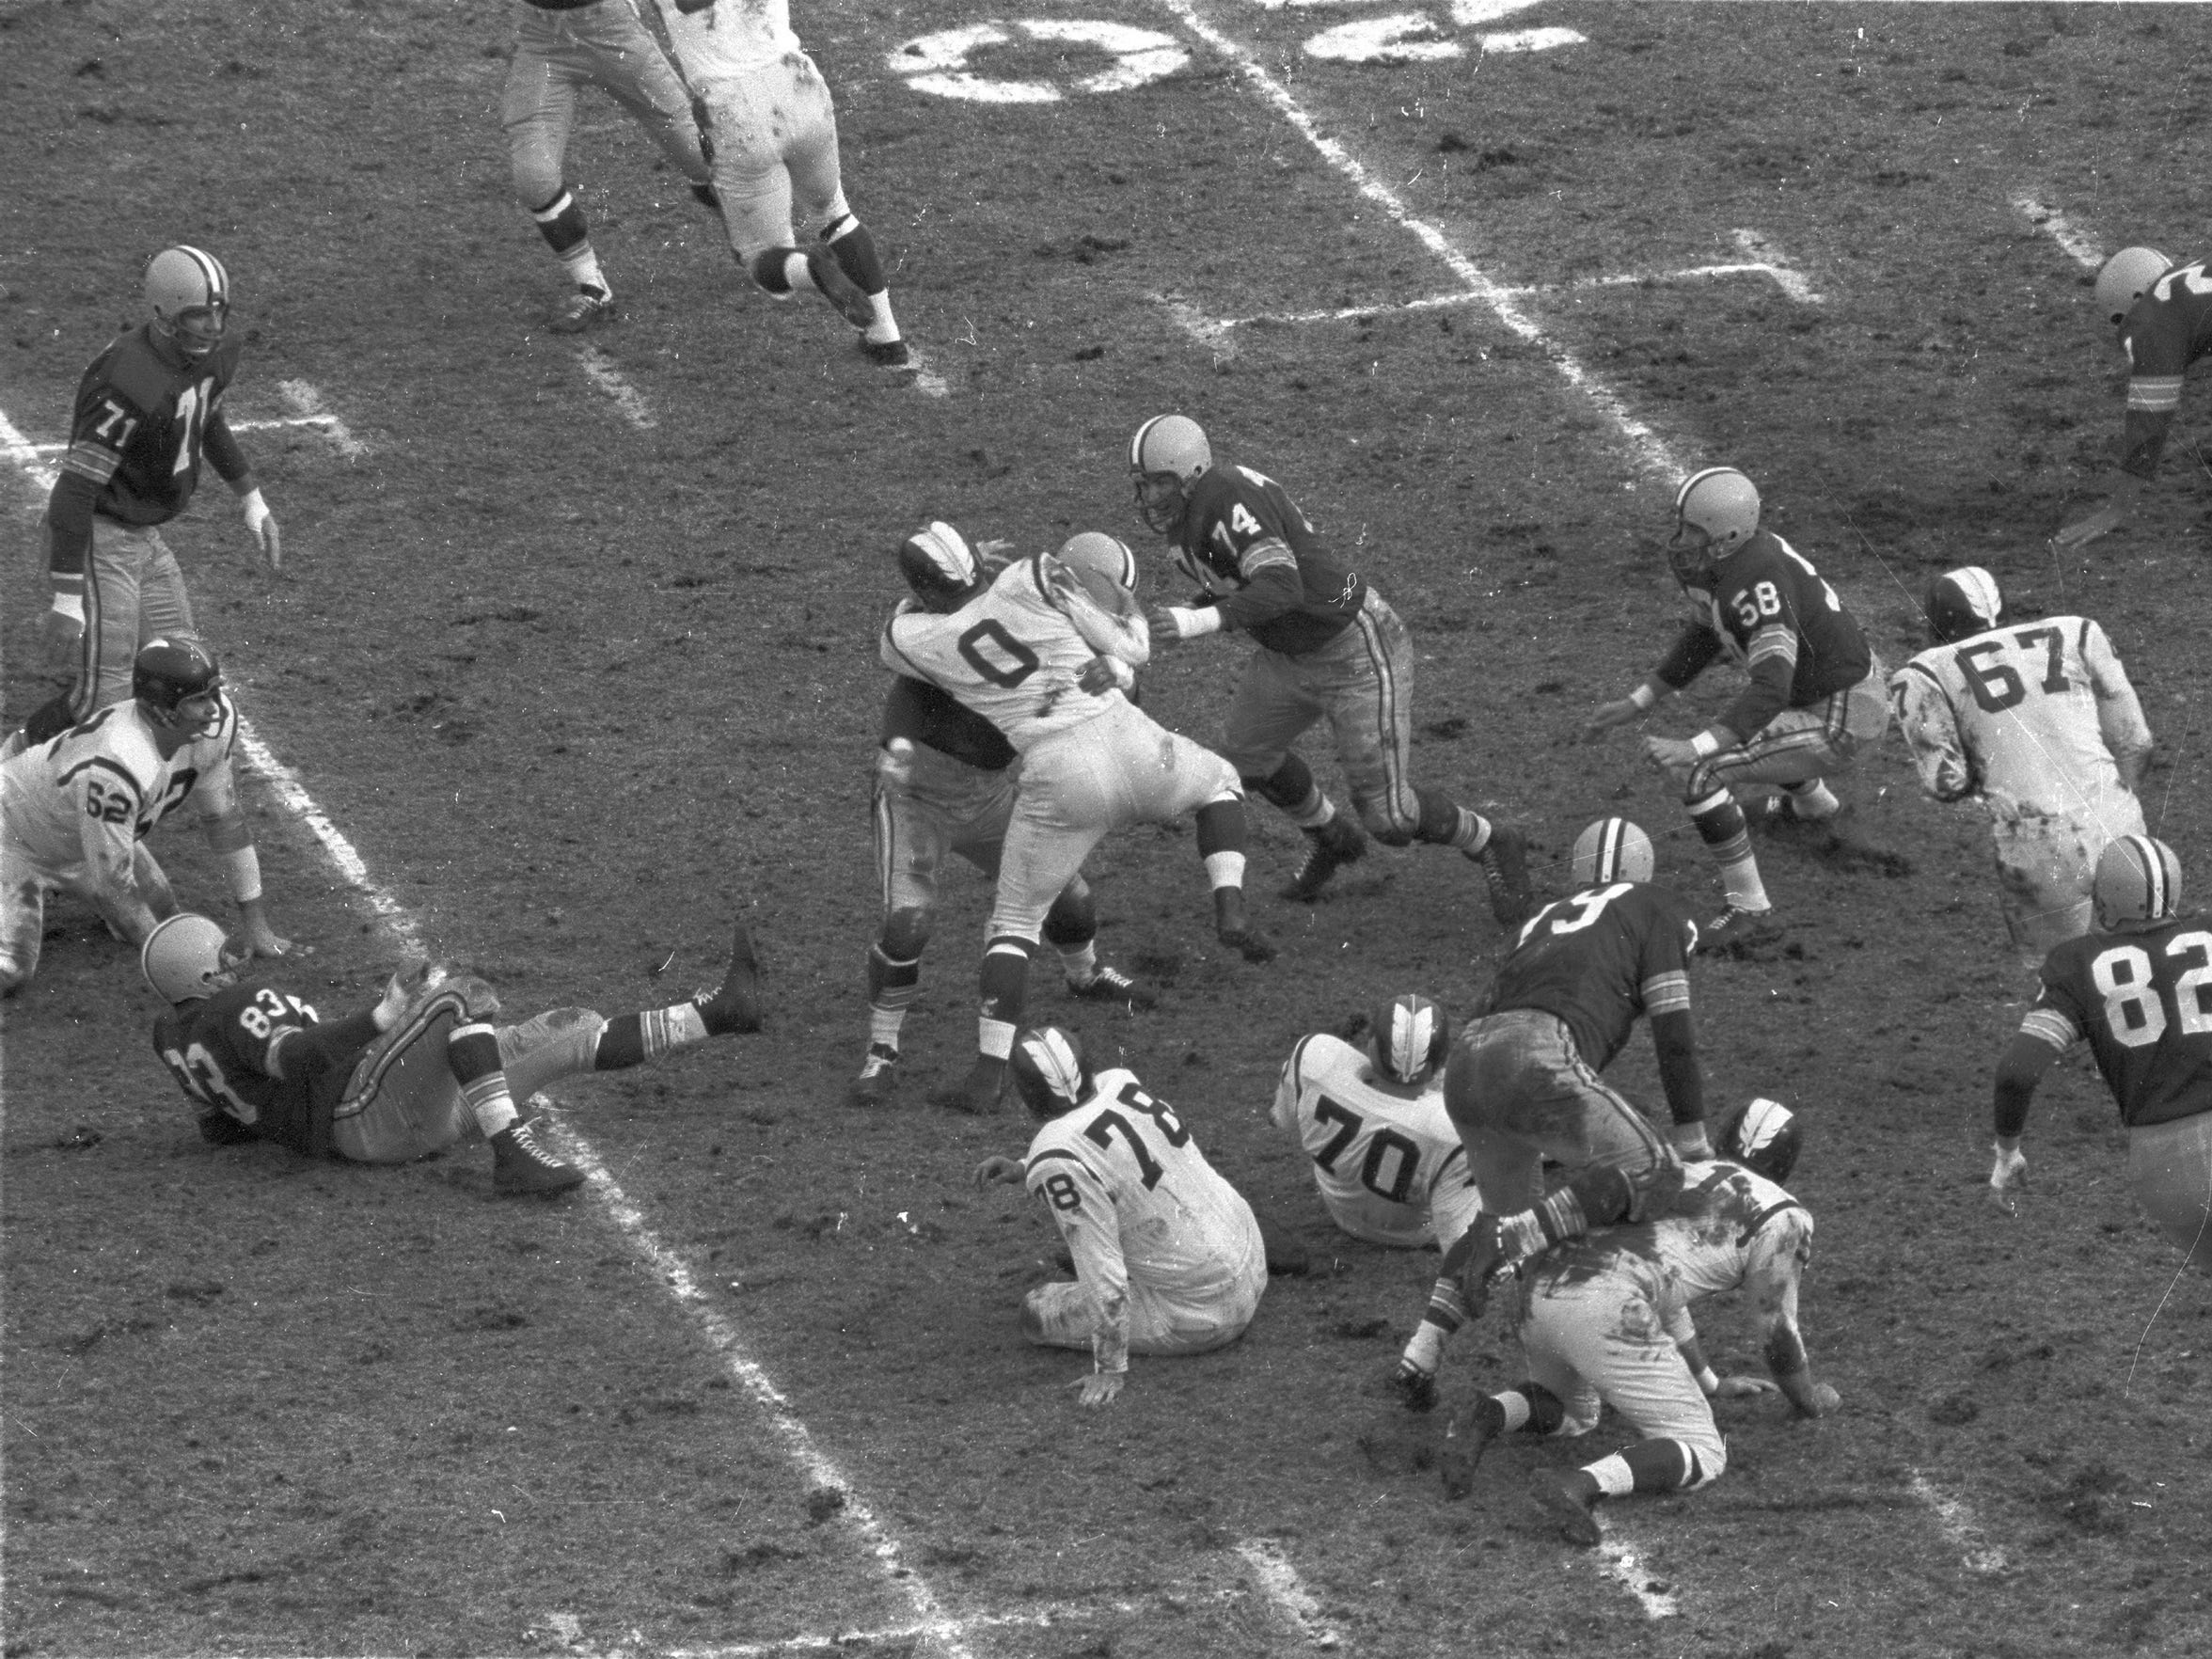 Washington running back Johnny Olszewski (0) is wrapped up by one Green Bay defender and surrounded by a host of others, including defensive tackle Henry Jordan (74), in the Packers' 21-0 victory at new City Stadium on Nov. 23, 1959. Clockwise from lower left, the Packers are defensive end Bill Quinlan (83), linebacker Bill Forester (71), defensive tackle Henry Jordan (74), linebacker Dan Currie (58), defensive end Jim Temp (82) and defensive tackle Dave Hanner (79). The Washington linemen are, from left, Don Boll (62), Don Lawrence (78), Jim Schrader (51) and Ray Lemek (70) on the ground and Don Stevens (67).